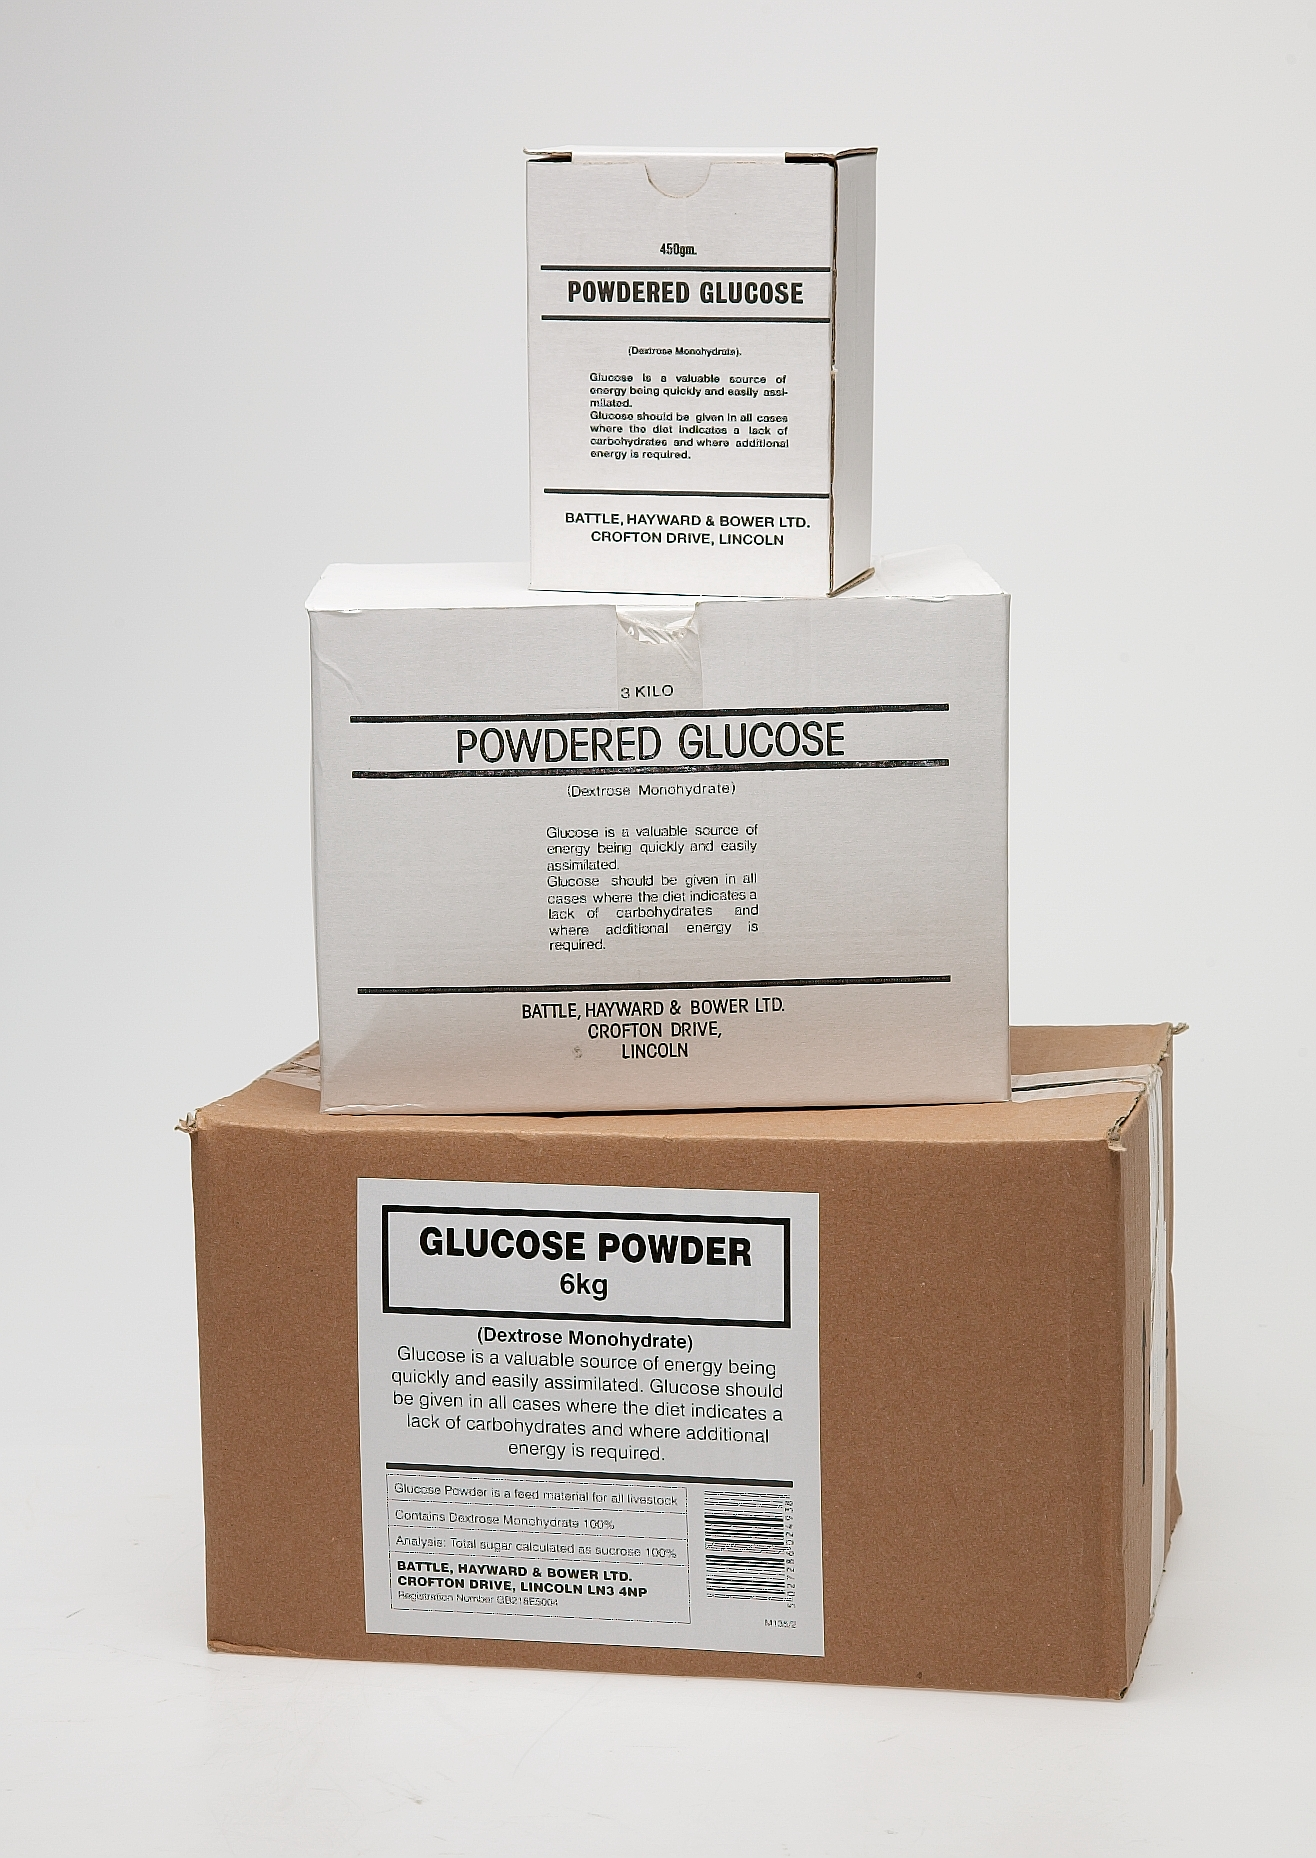 Battles Powdered Glucose